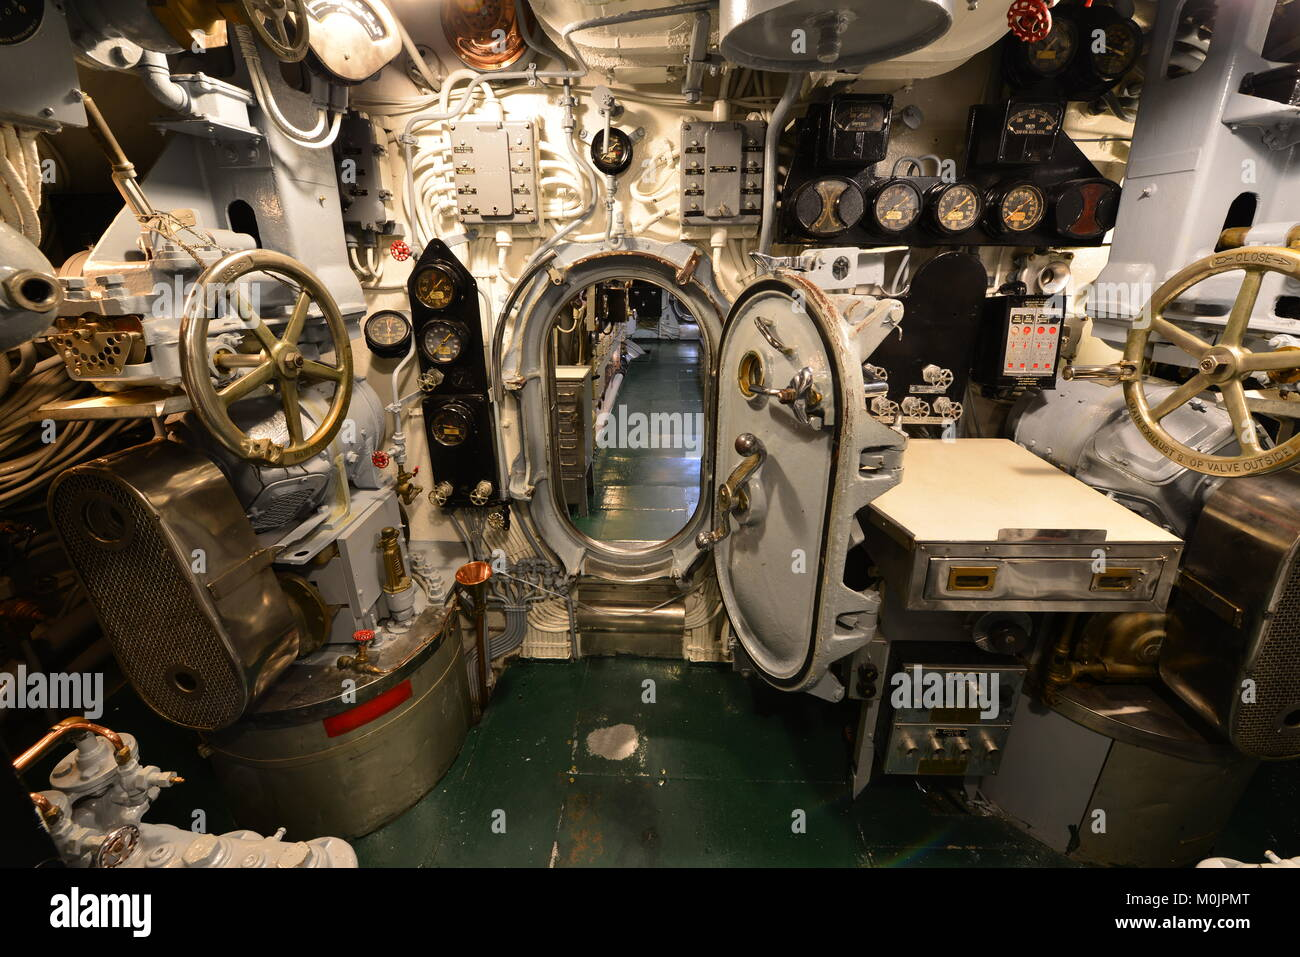 fuse box lock stock photos & fuse box lock stock images alamy  controls and an open door on the submarine uss drum stock image